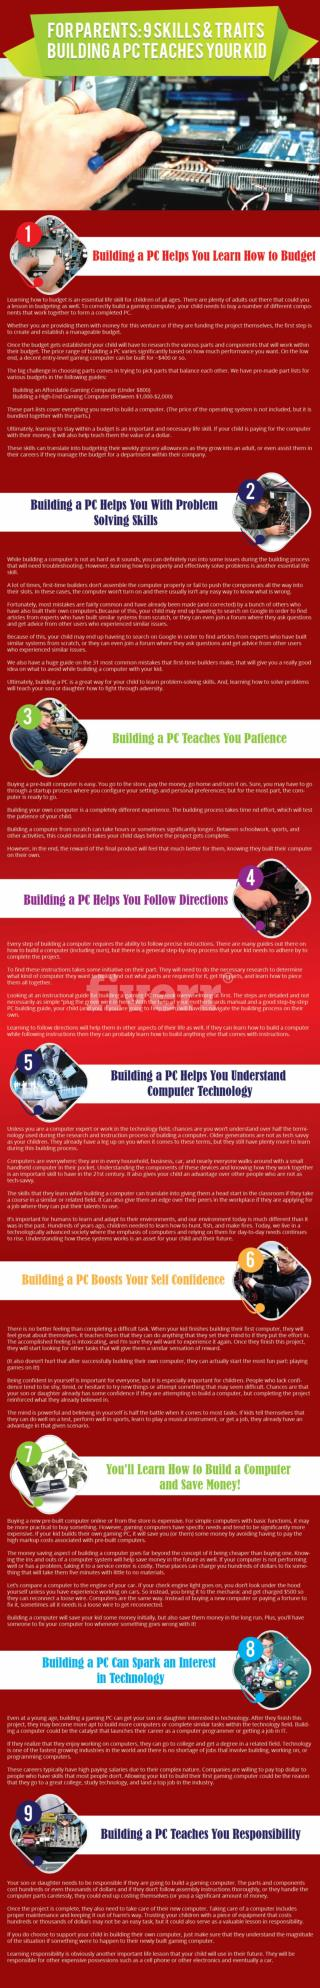 9 Skills & Traits Building a PC Teaches Your Kid